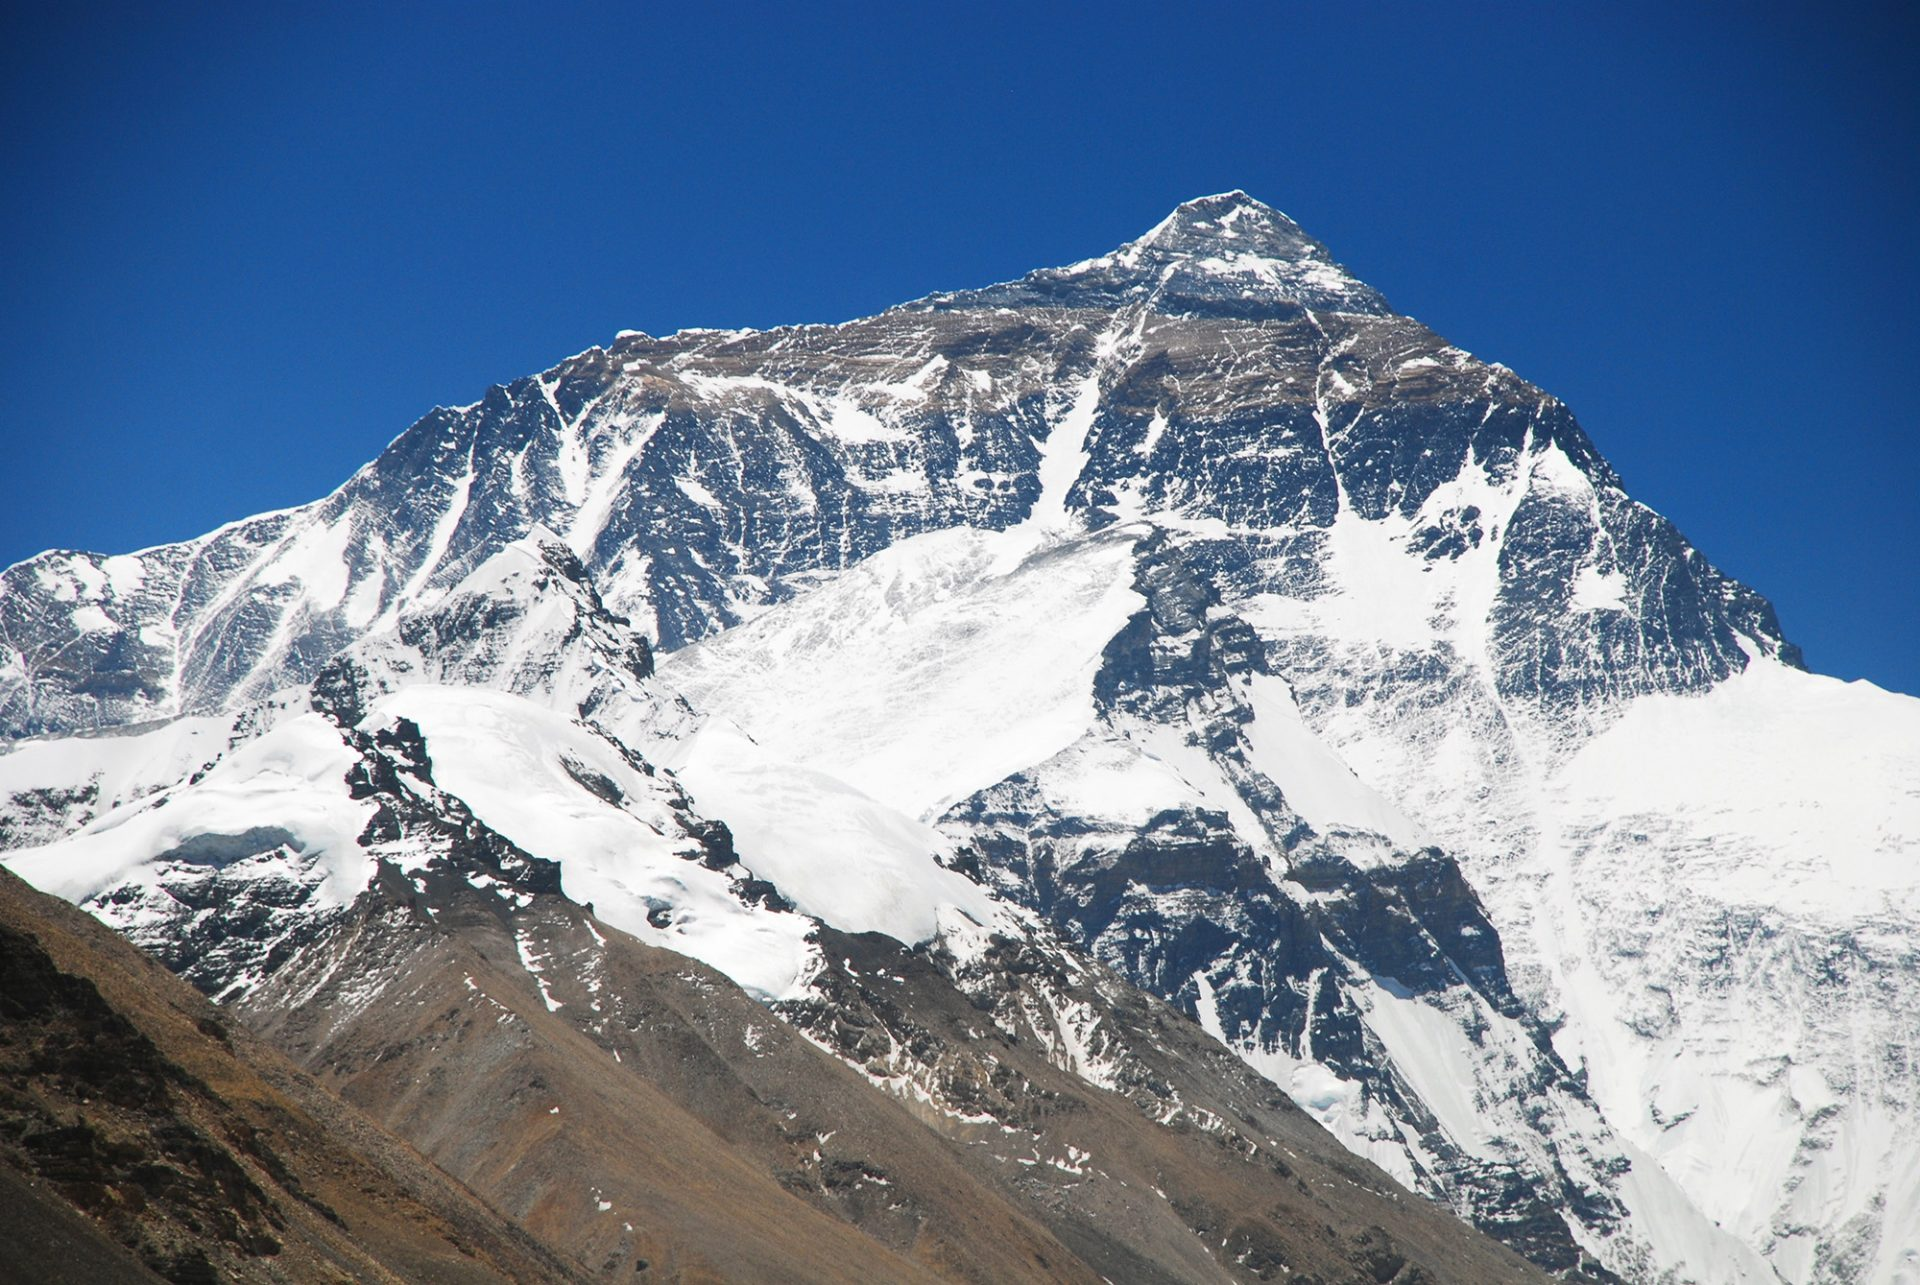 Trek to Everest – Your Own Experience of the World's Greatest Mountain